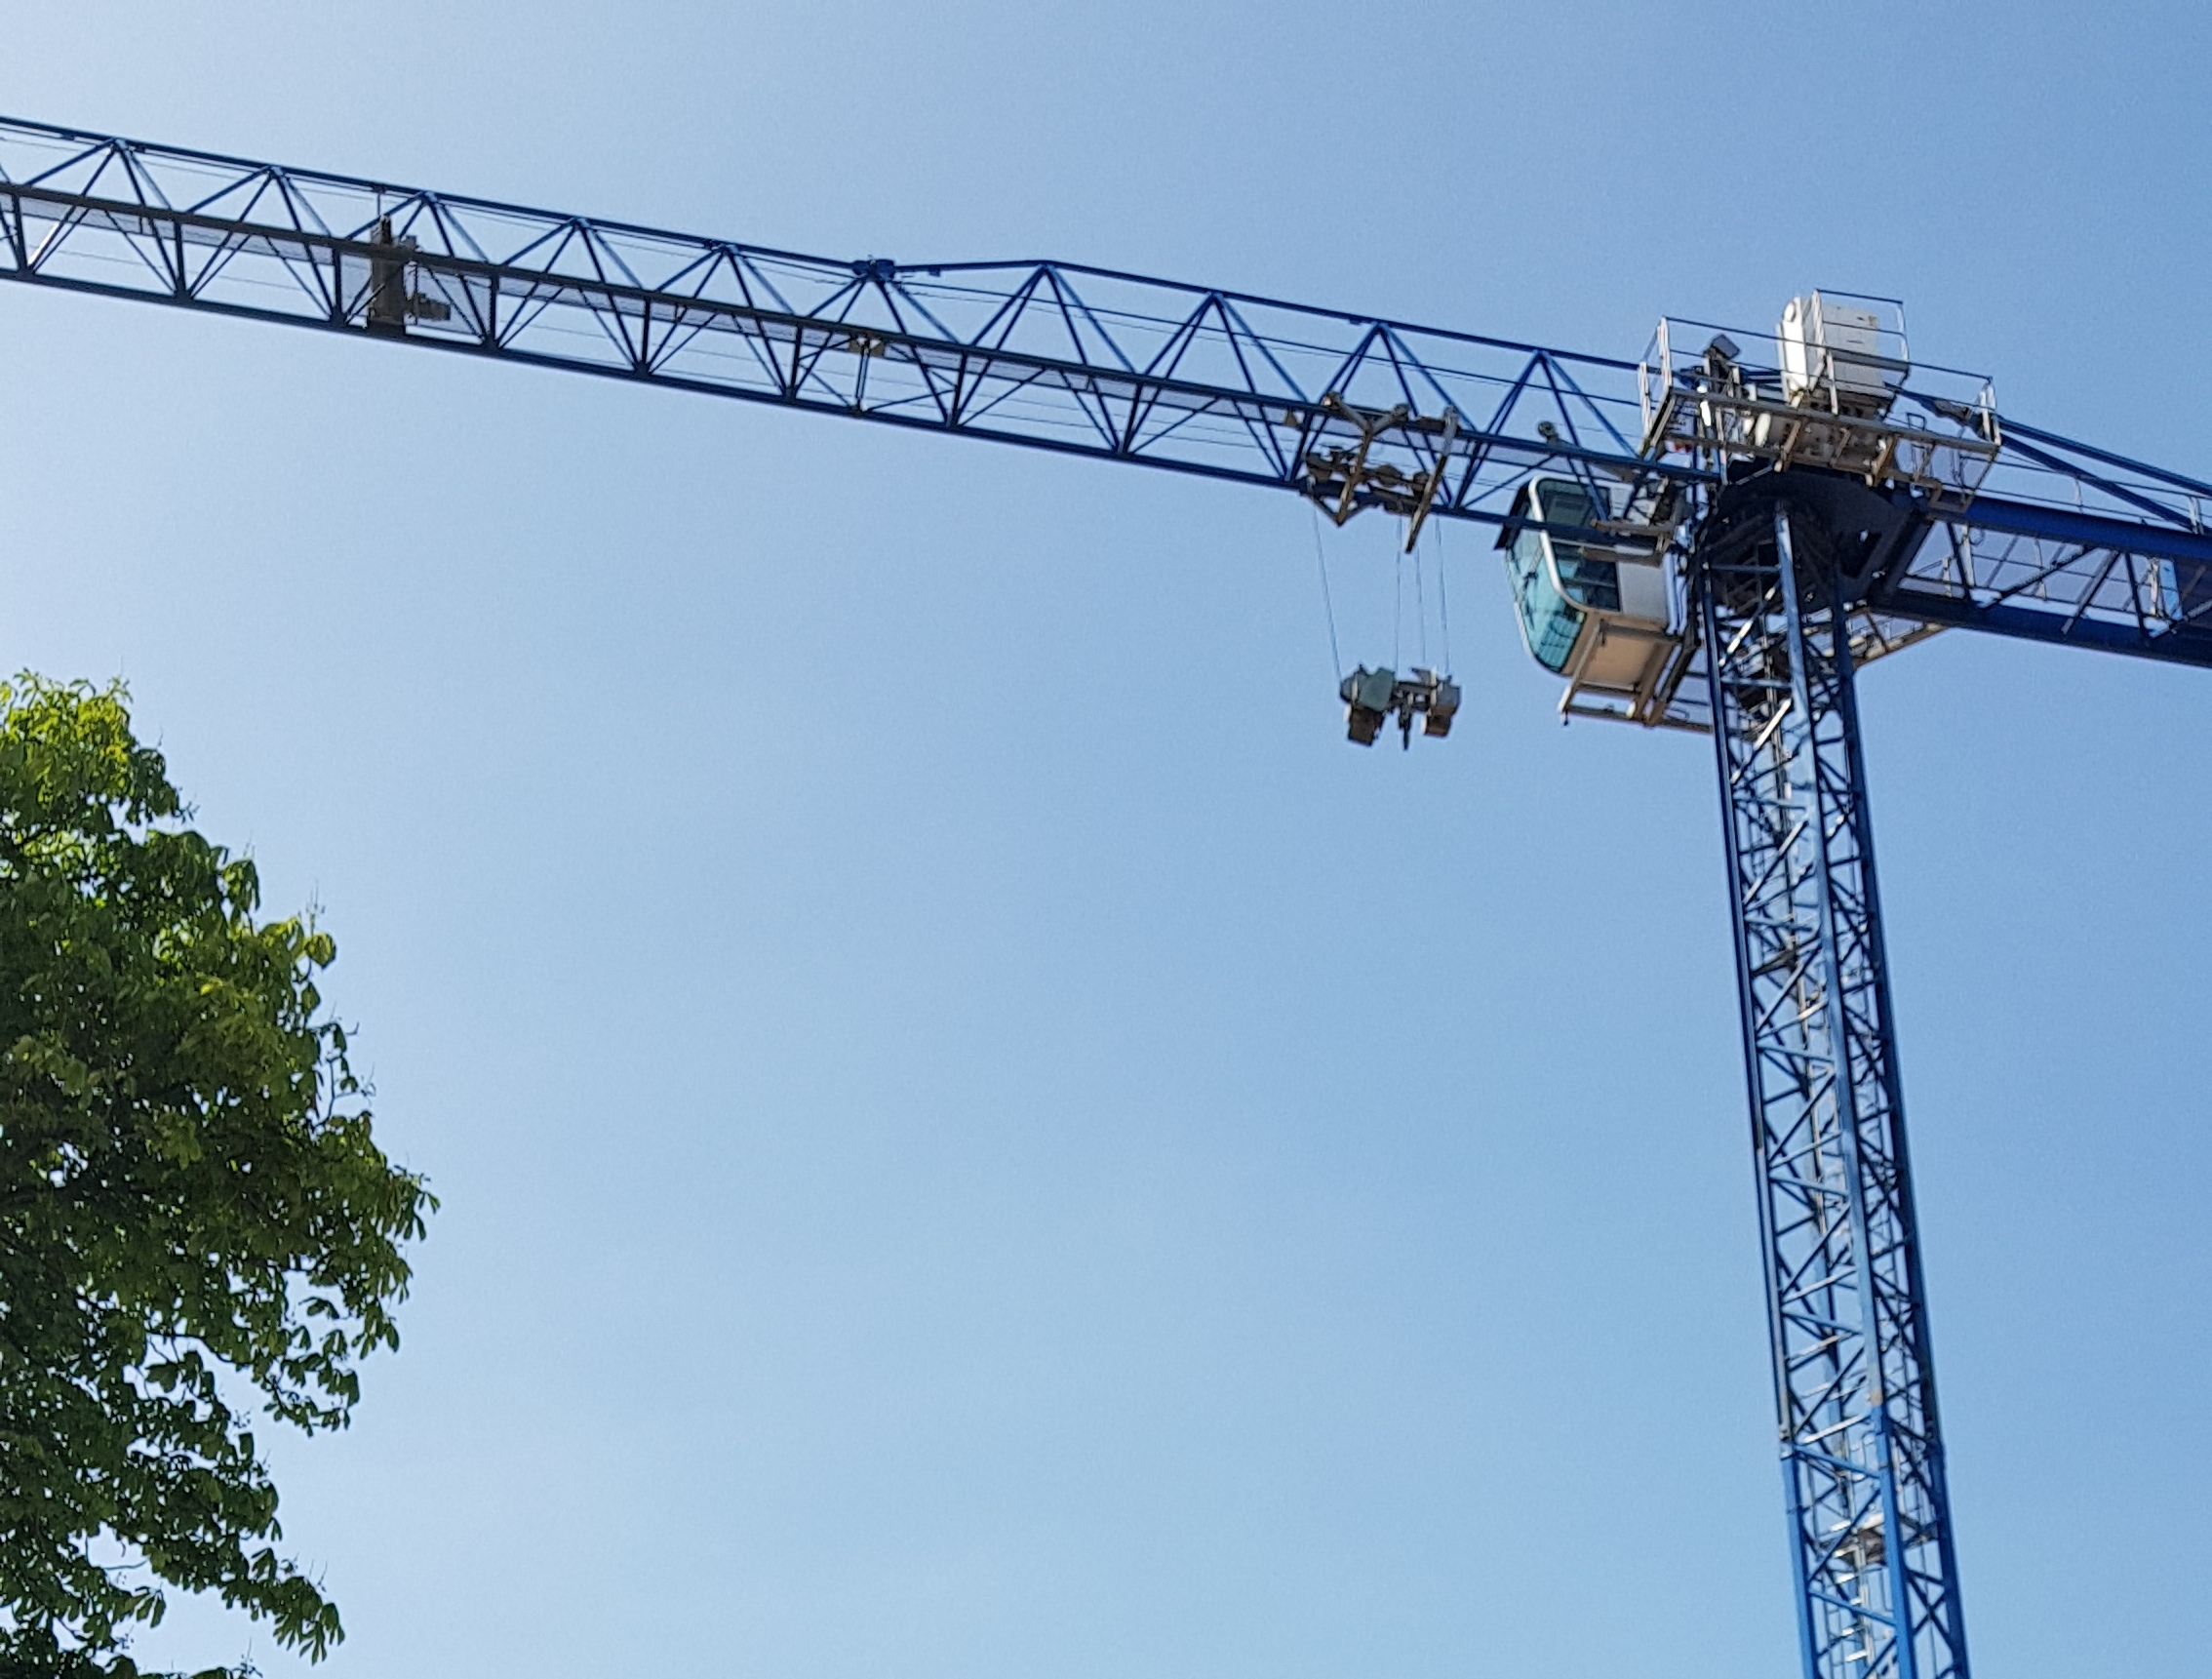 Crane hangs high over the site.